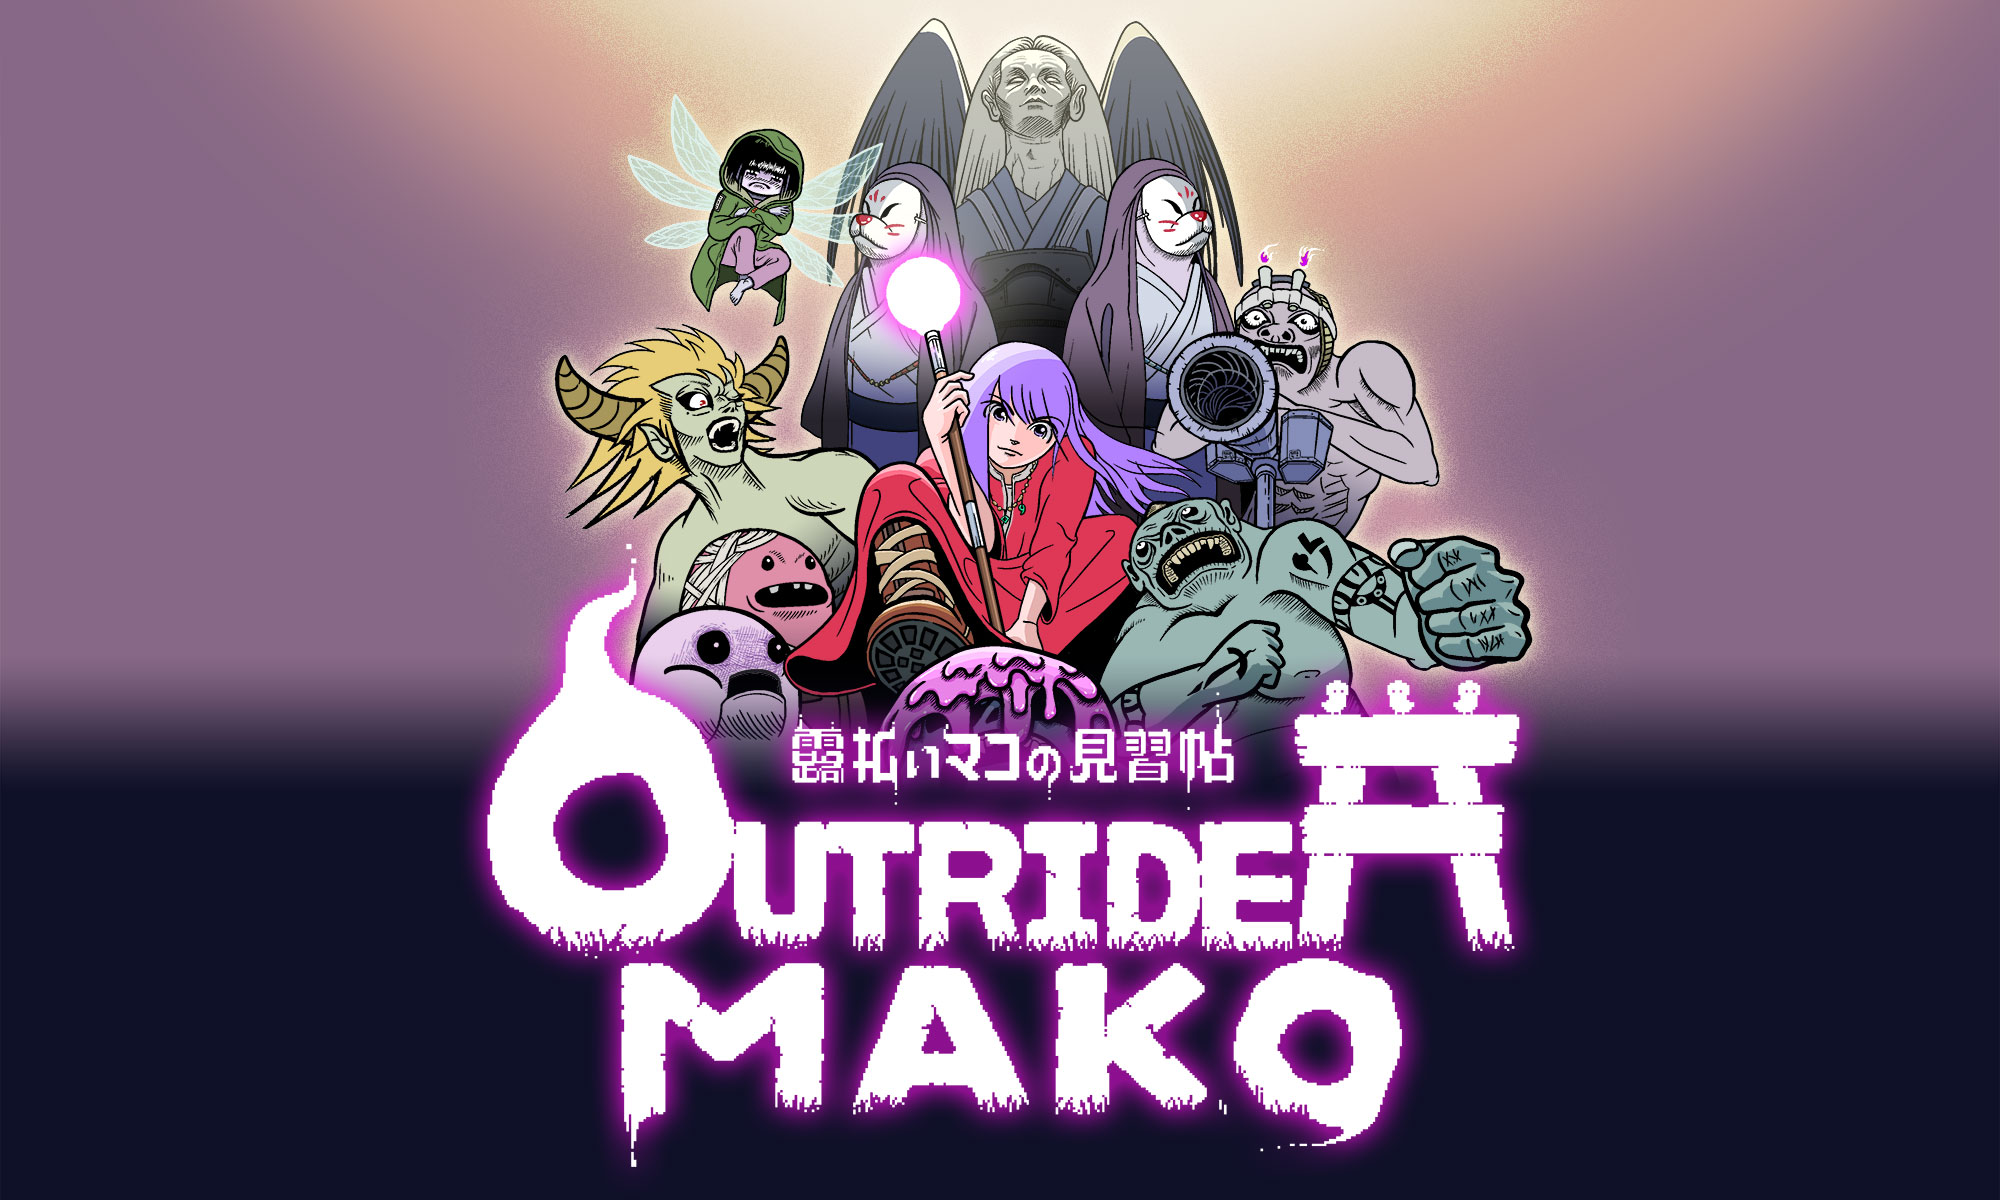 OUTRIDER MAKO ~露払いマコの見習帖~